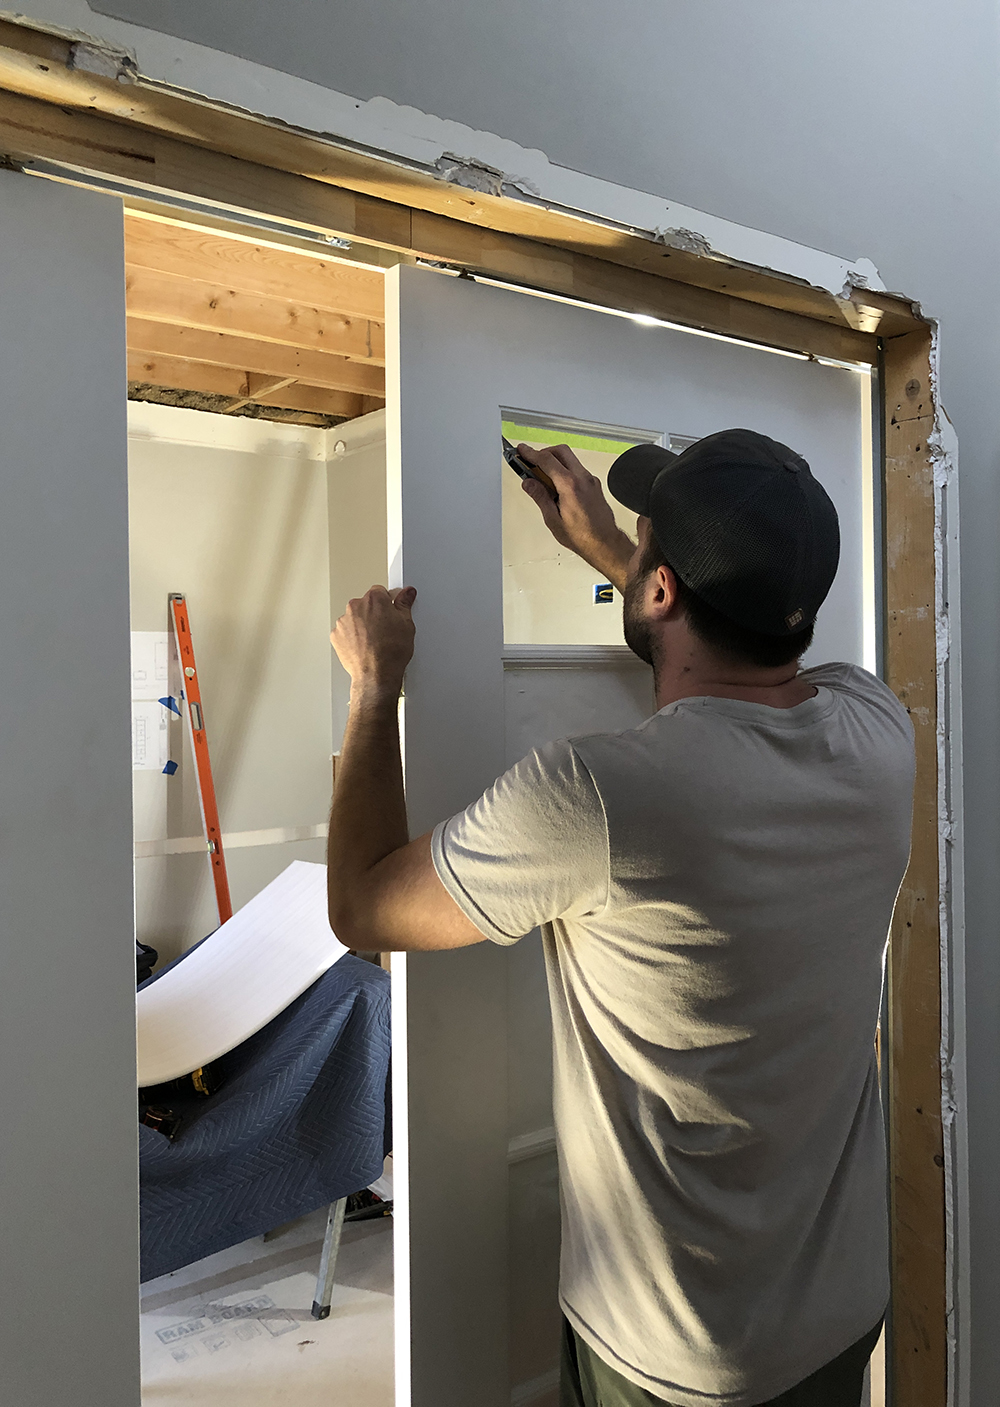 Office Renovation Update - roomfortuesday.com